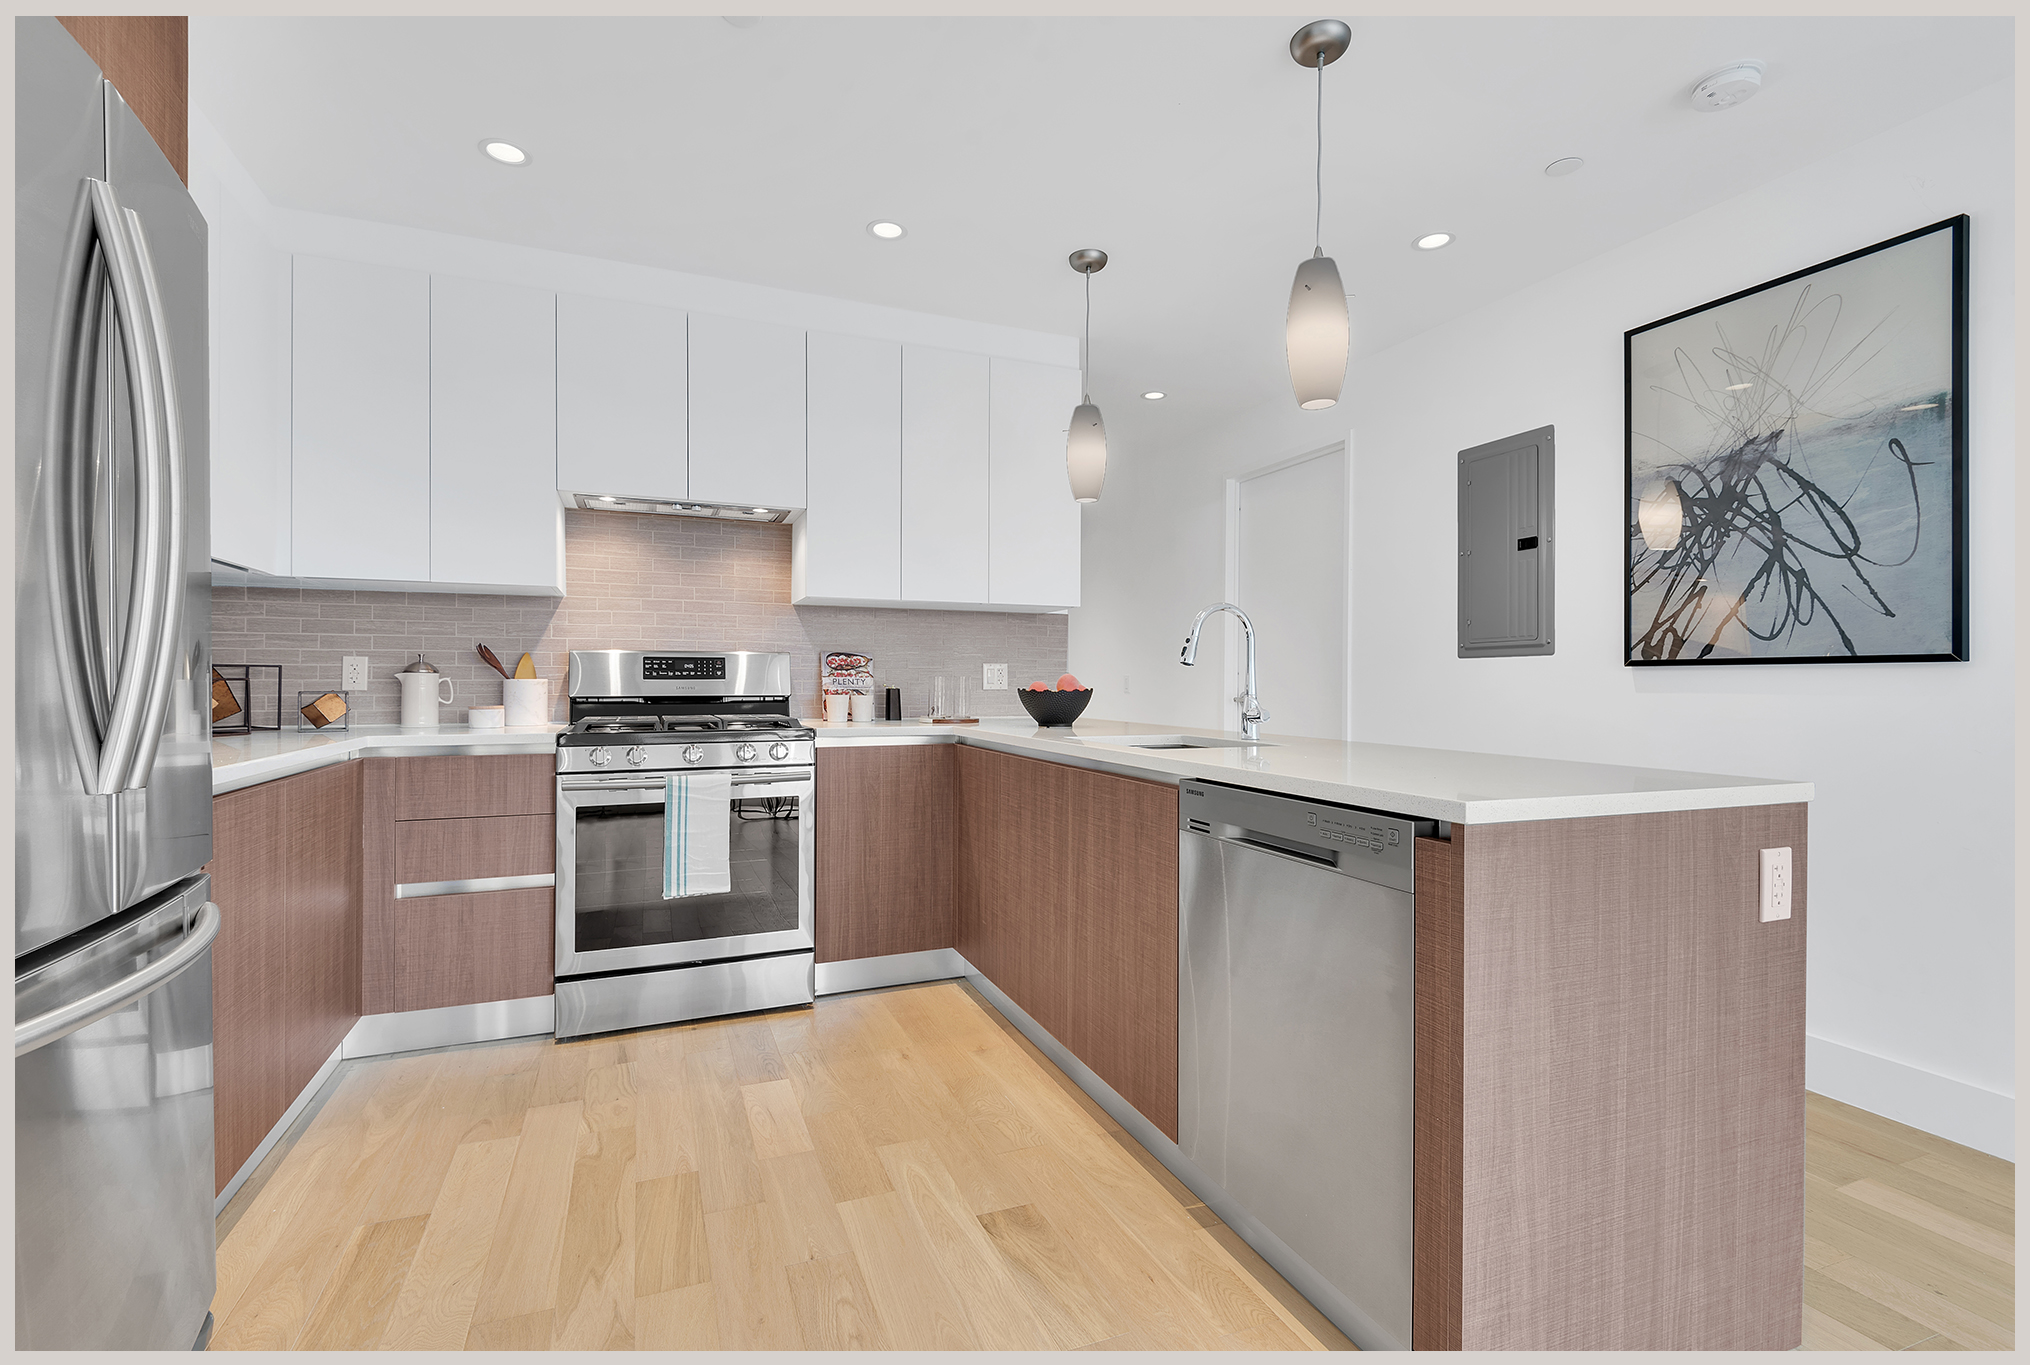 kitchen1_gray2030.jpg